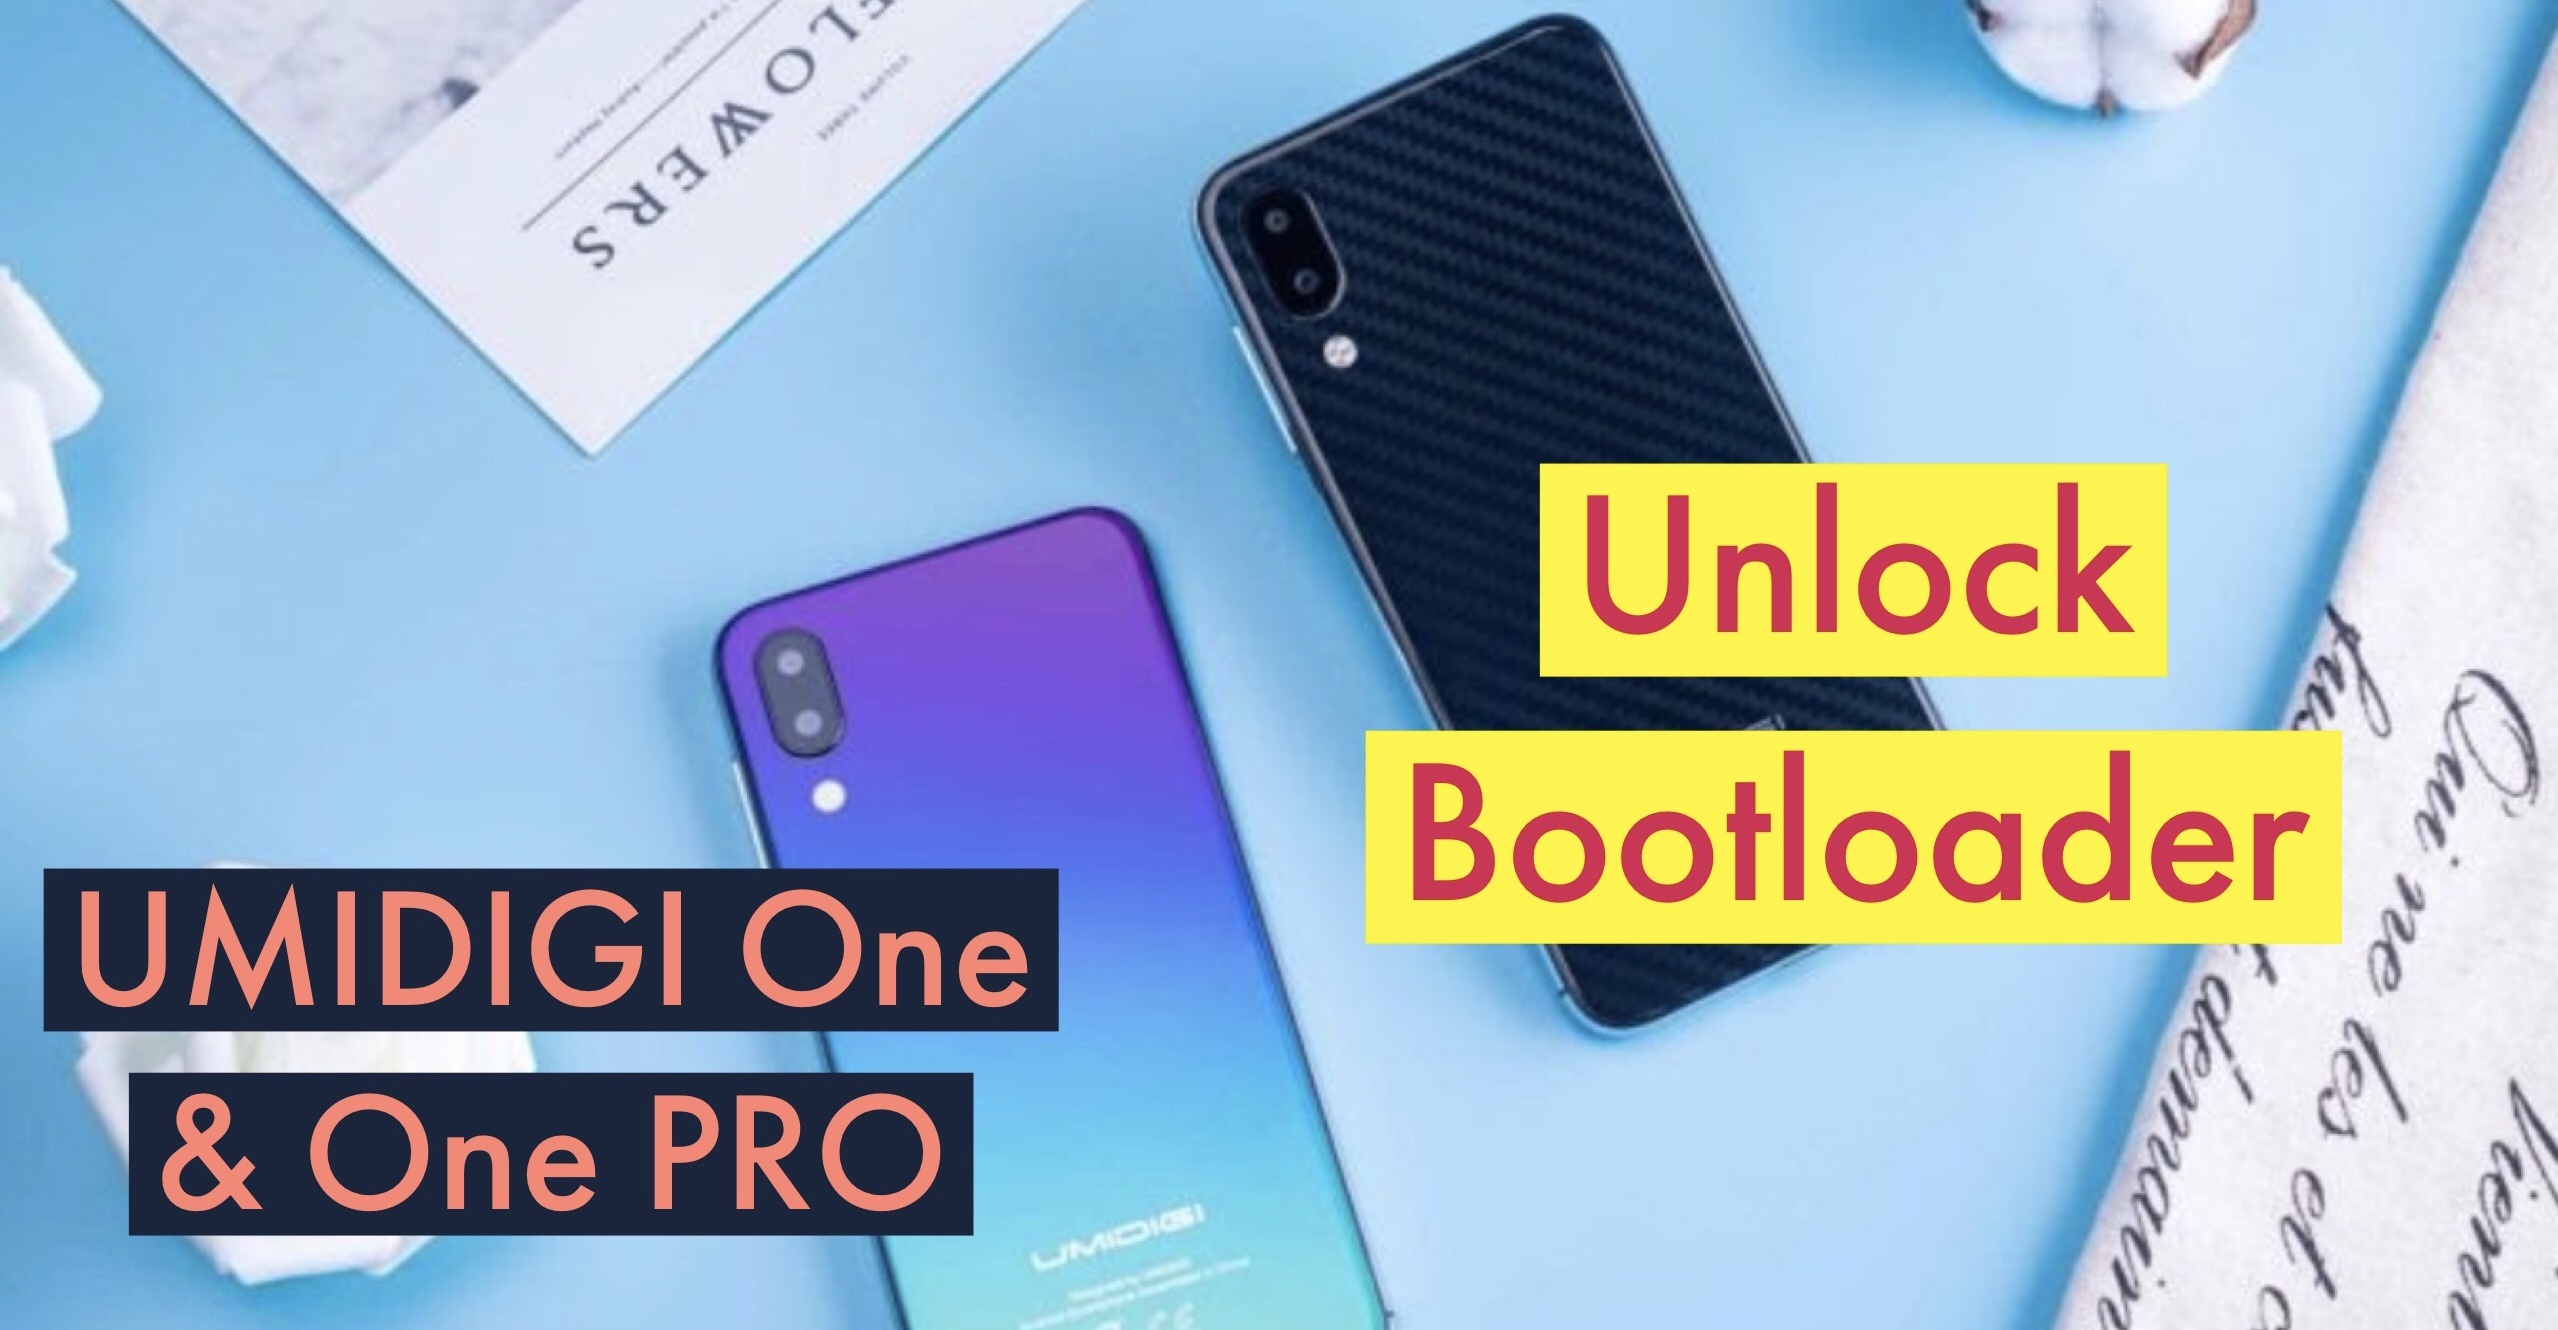 How to Unlock Bootloader on UMIDIGI One & One PRO? Fastboot